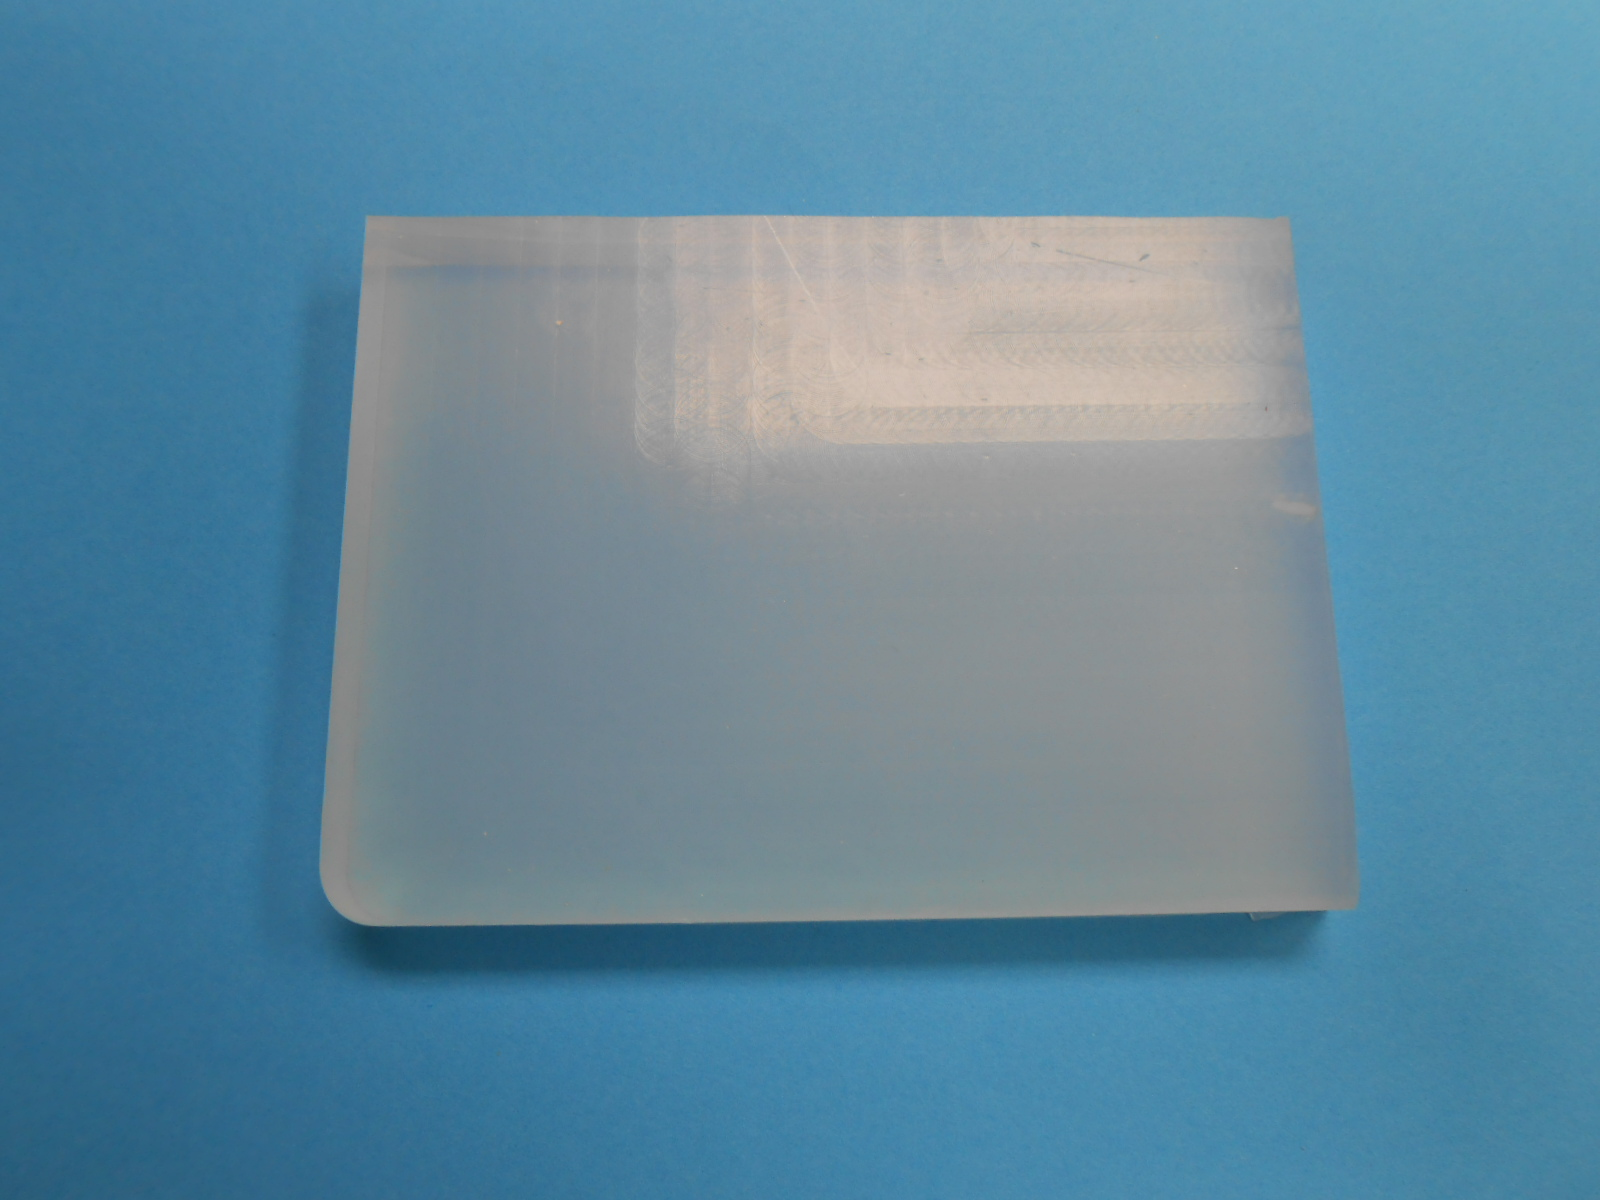 Silicone Blocks and Gel Sheeting  Technical Products Inc